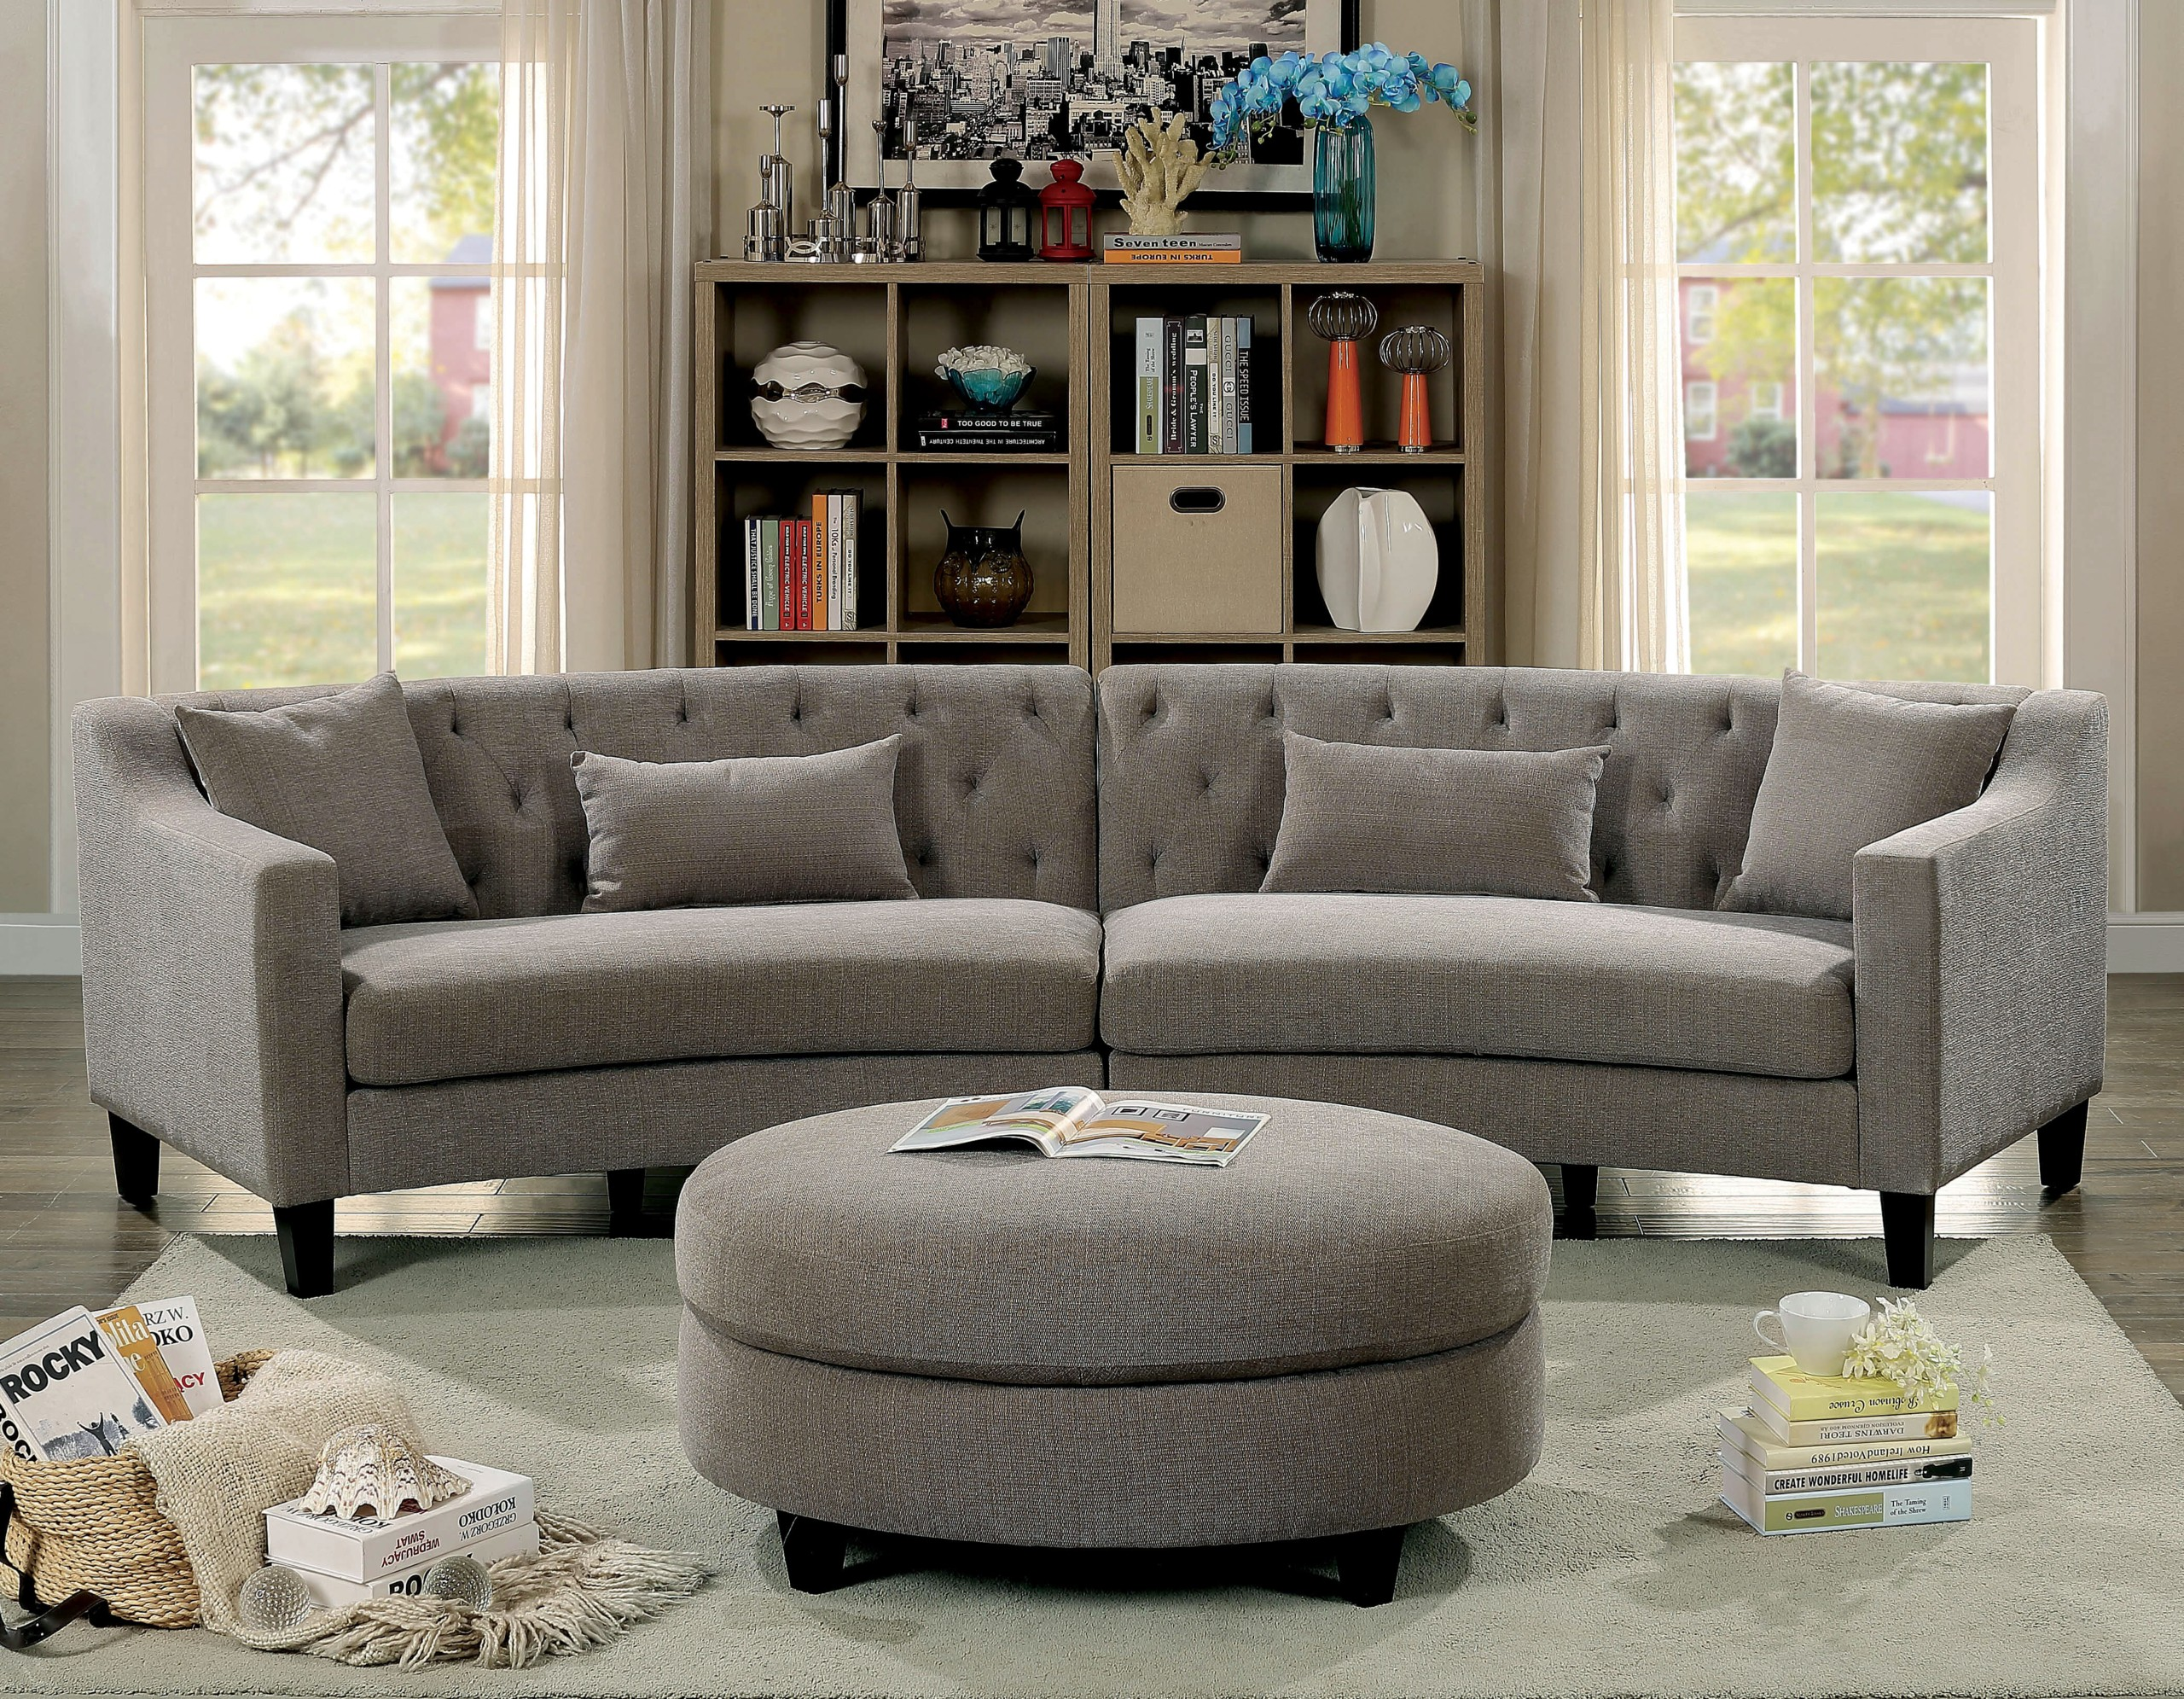 curved sectional sofa couch ideas